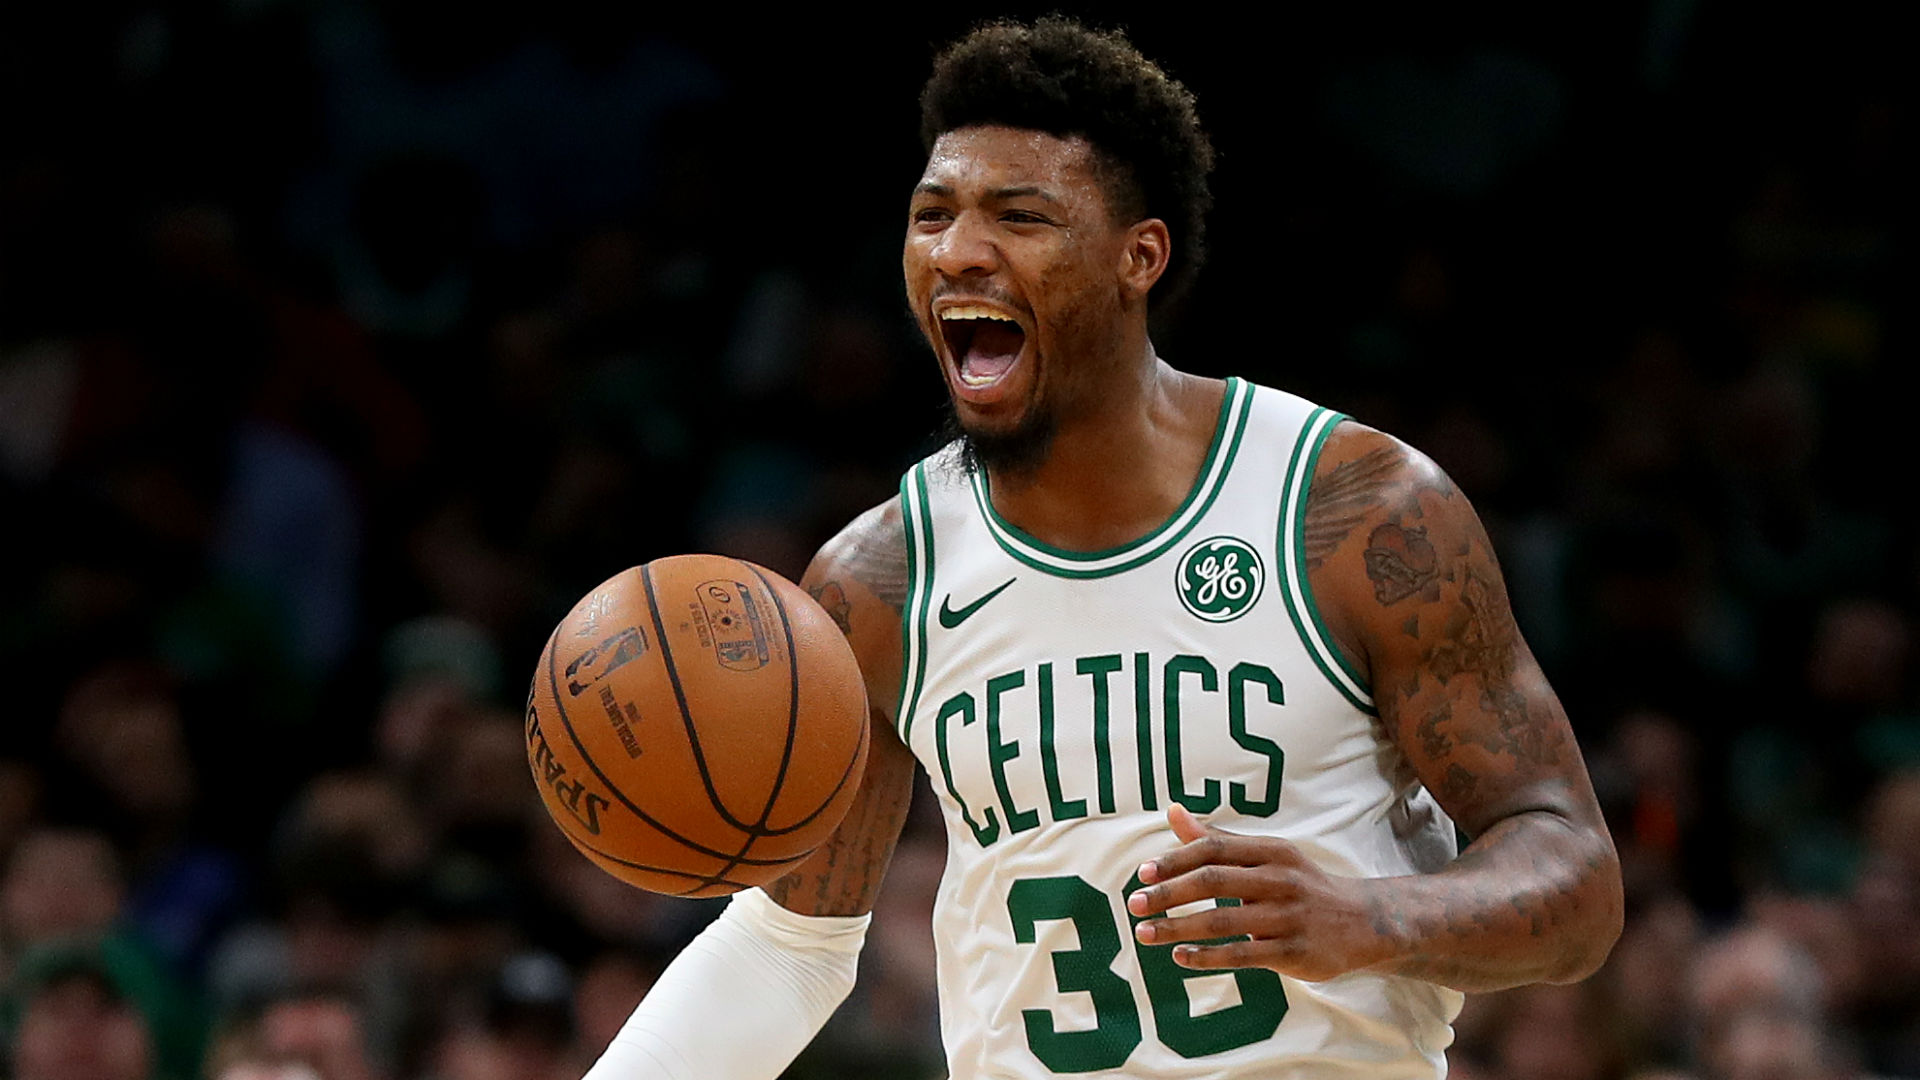 Celtics' Smart could miss 2 playoff rounds